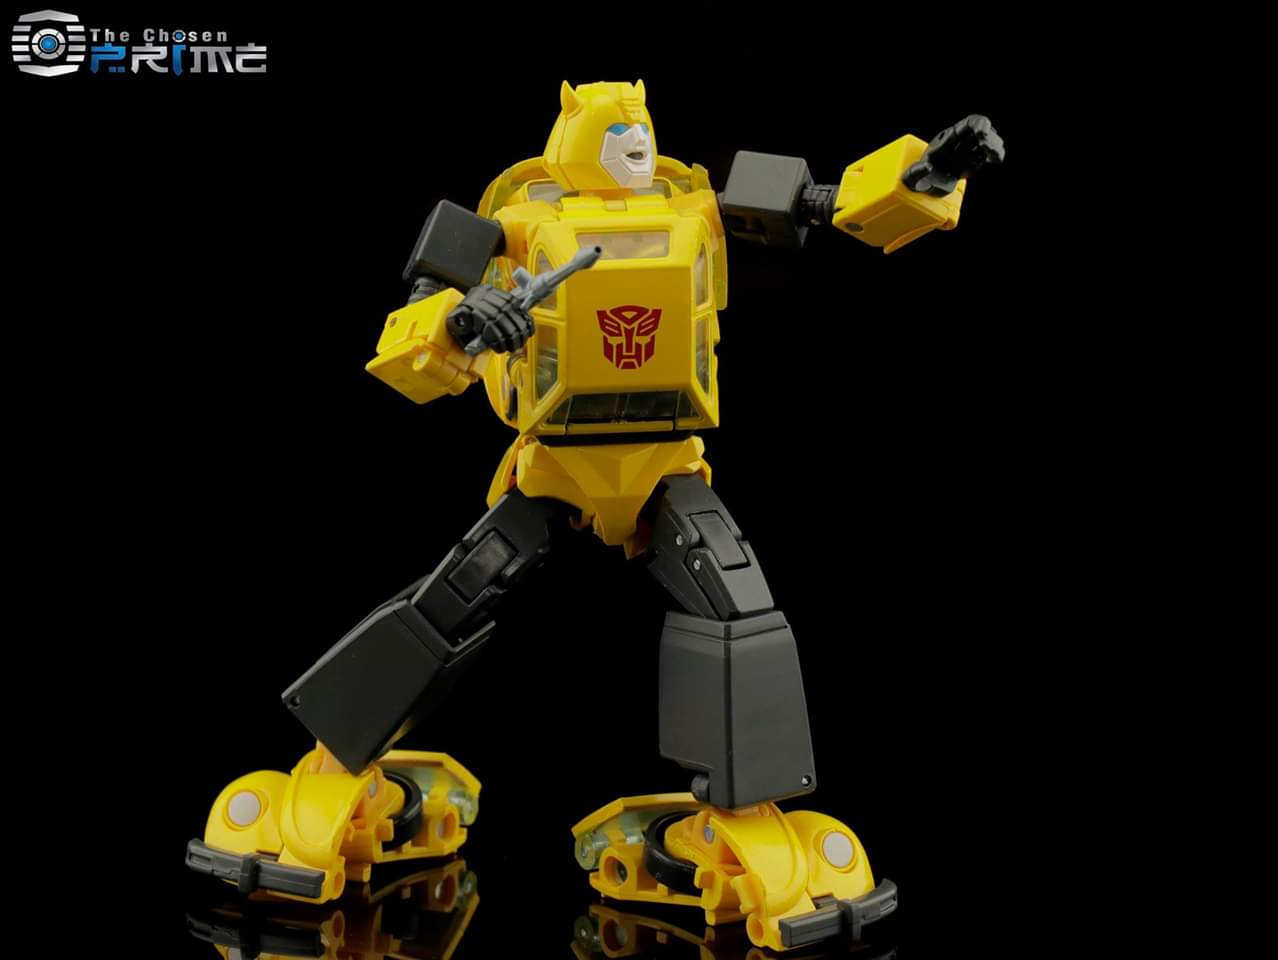 [Masterpiece] MP-45 Bumblebee/Bourdon v2.0 - Page 2 7wiLxkBB_o